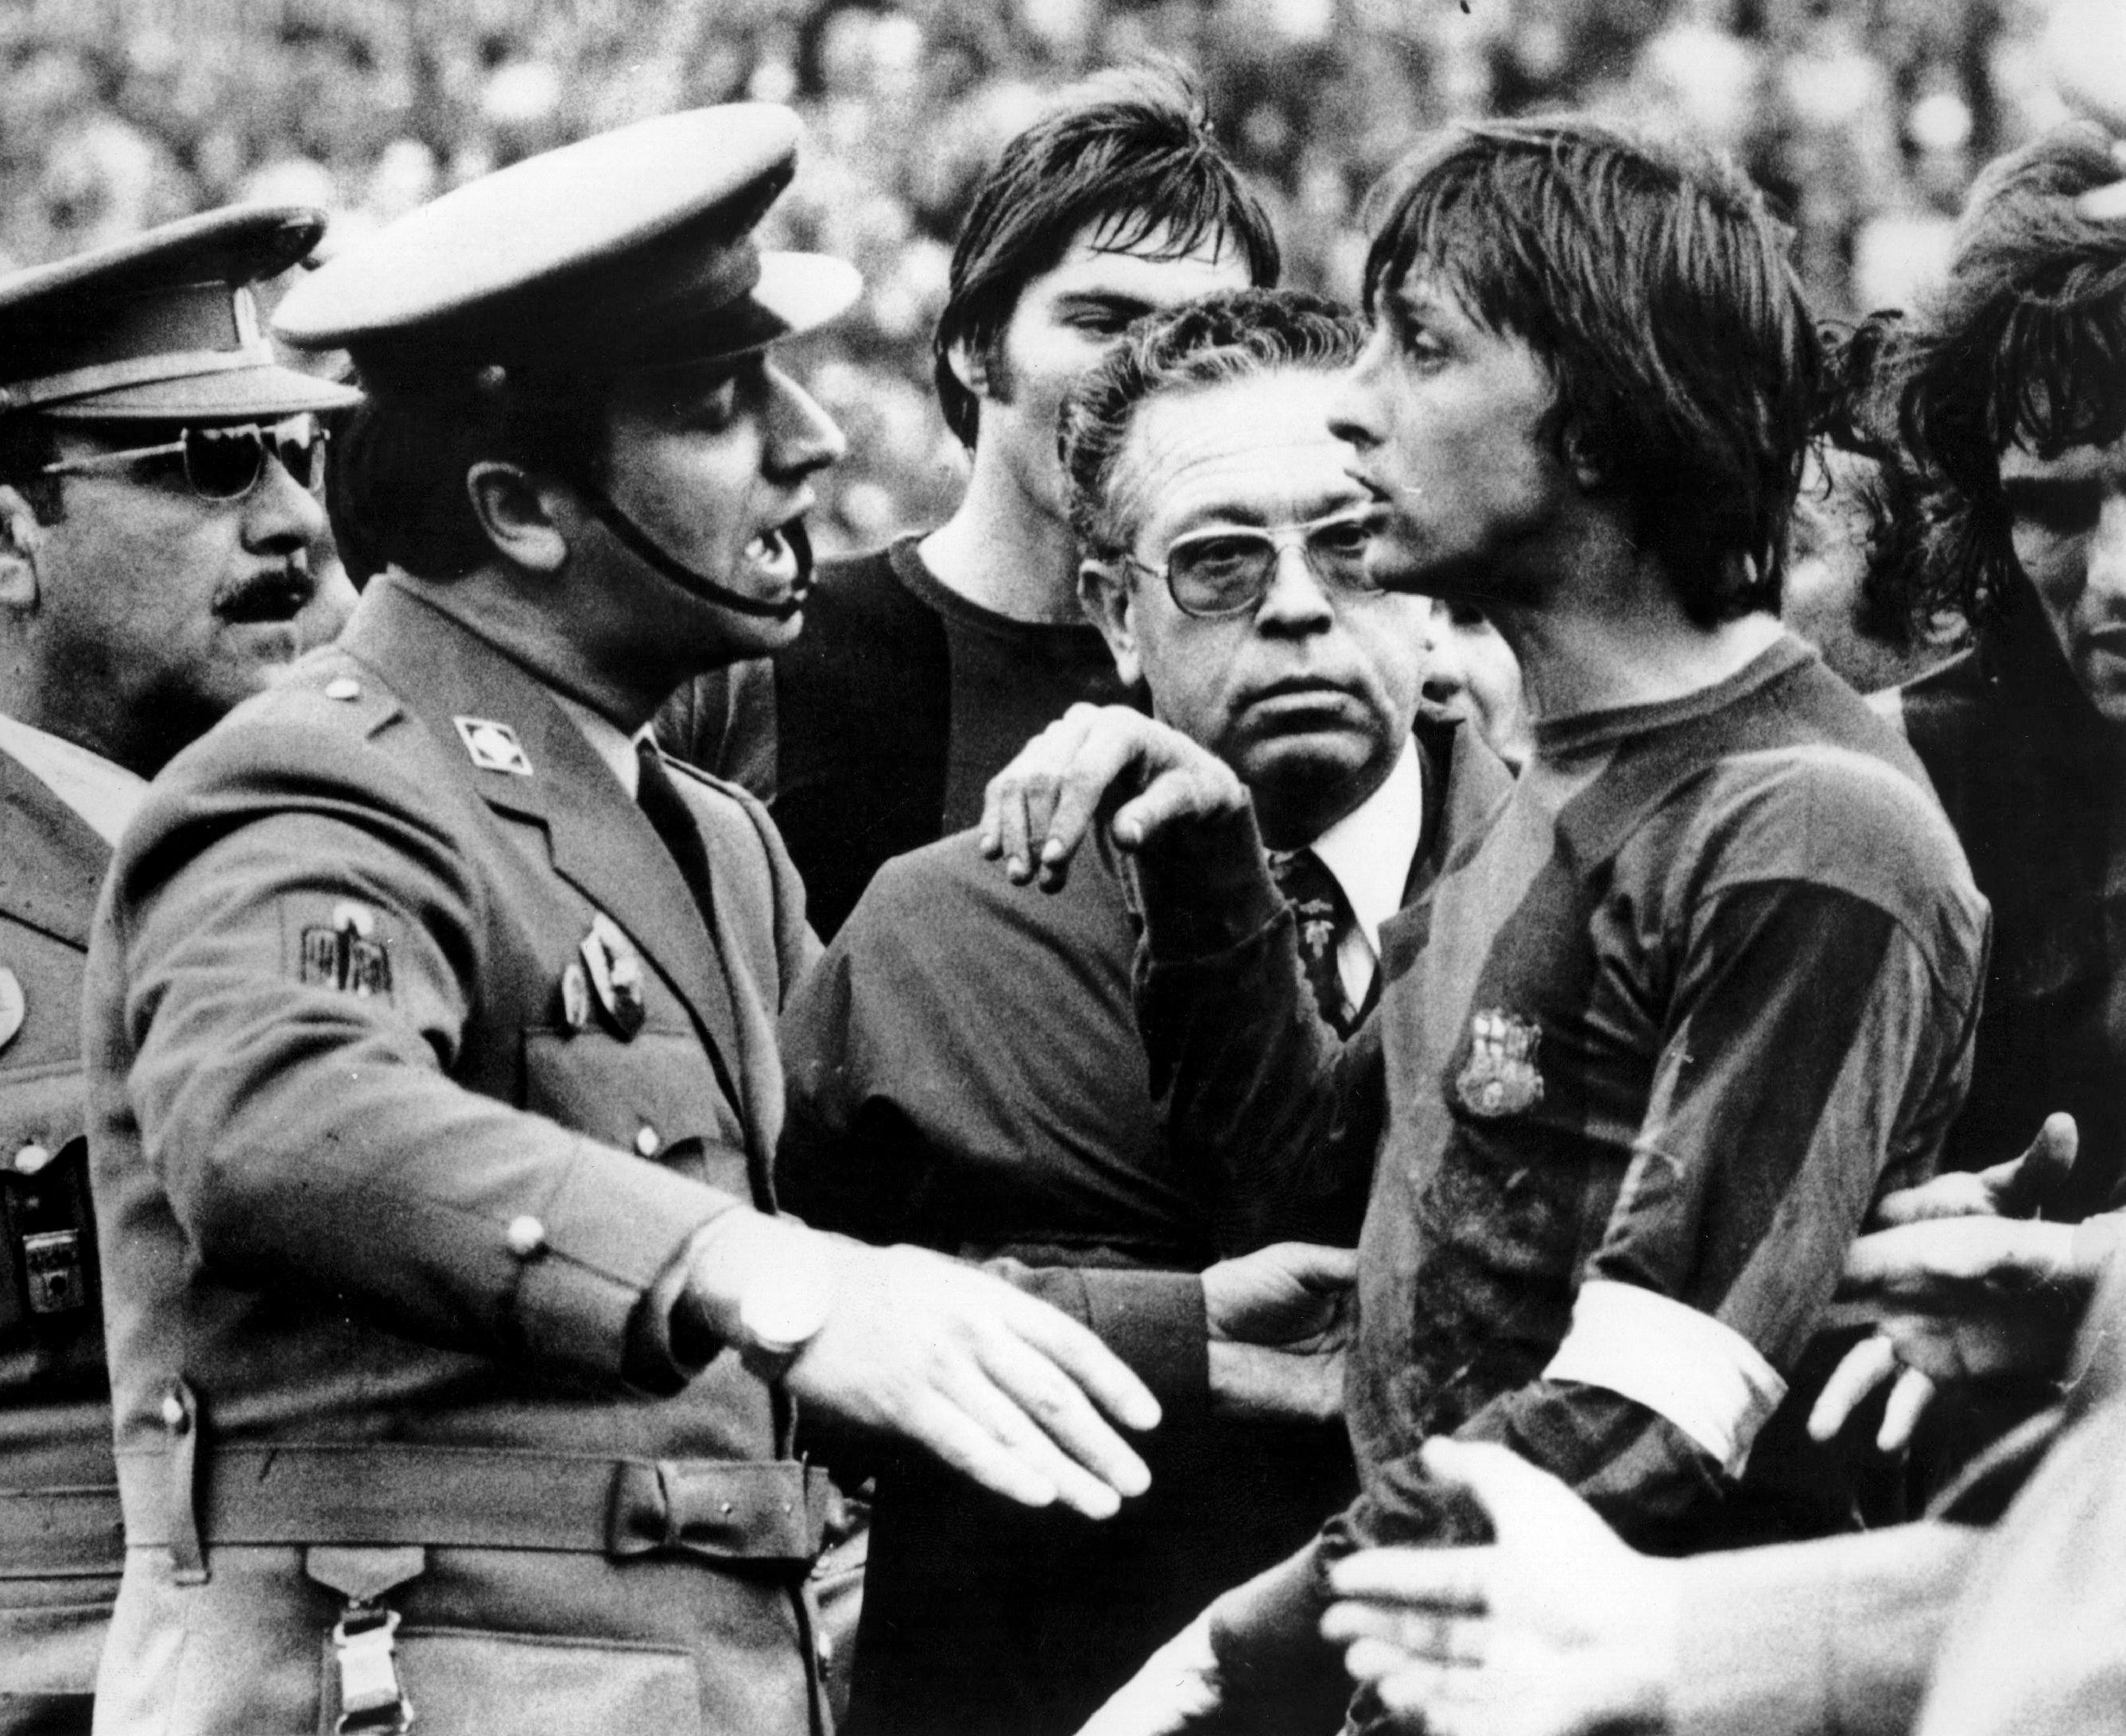 Escorted off the field with Barcelona